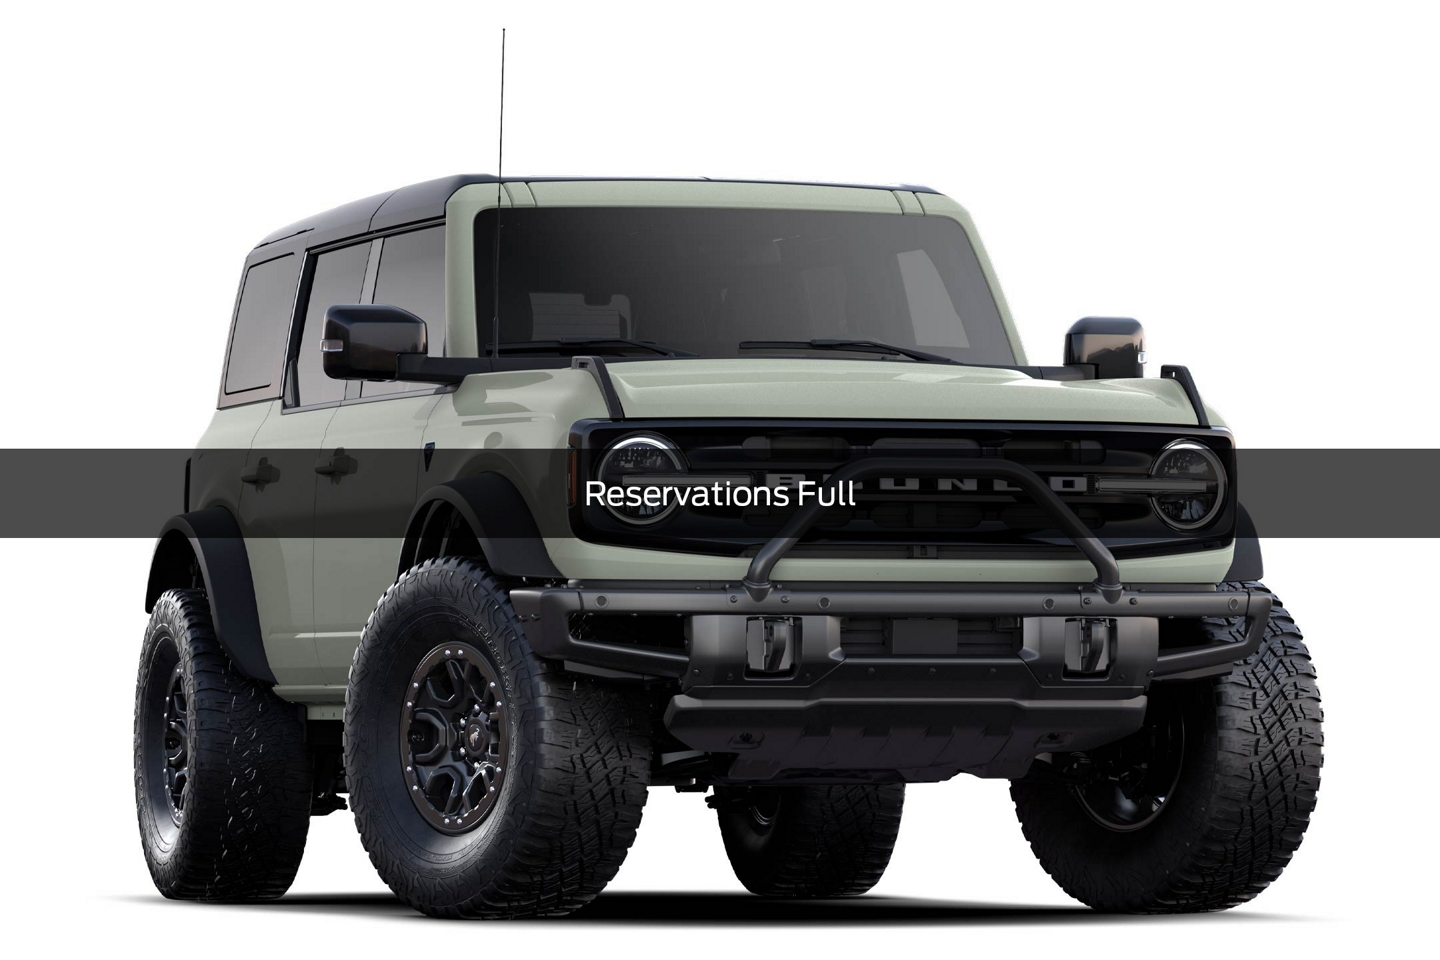 2021 Ford Bronco First Edition Model